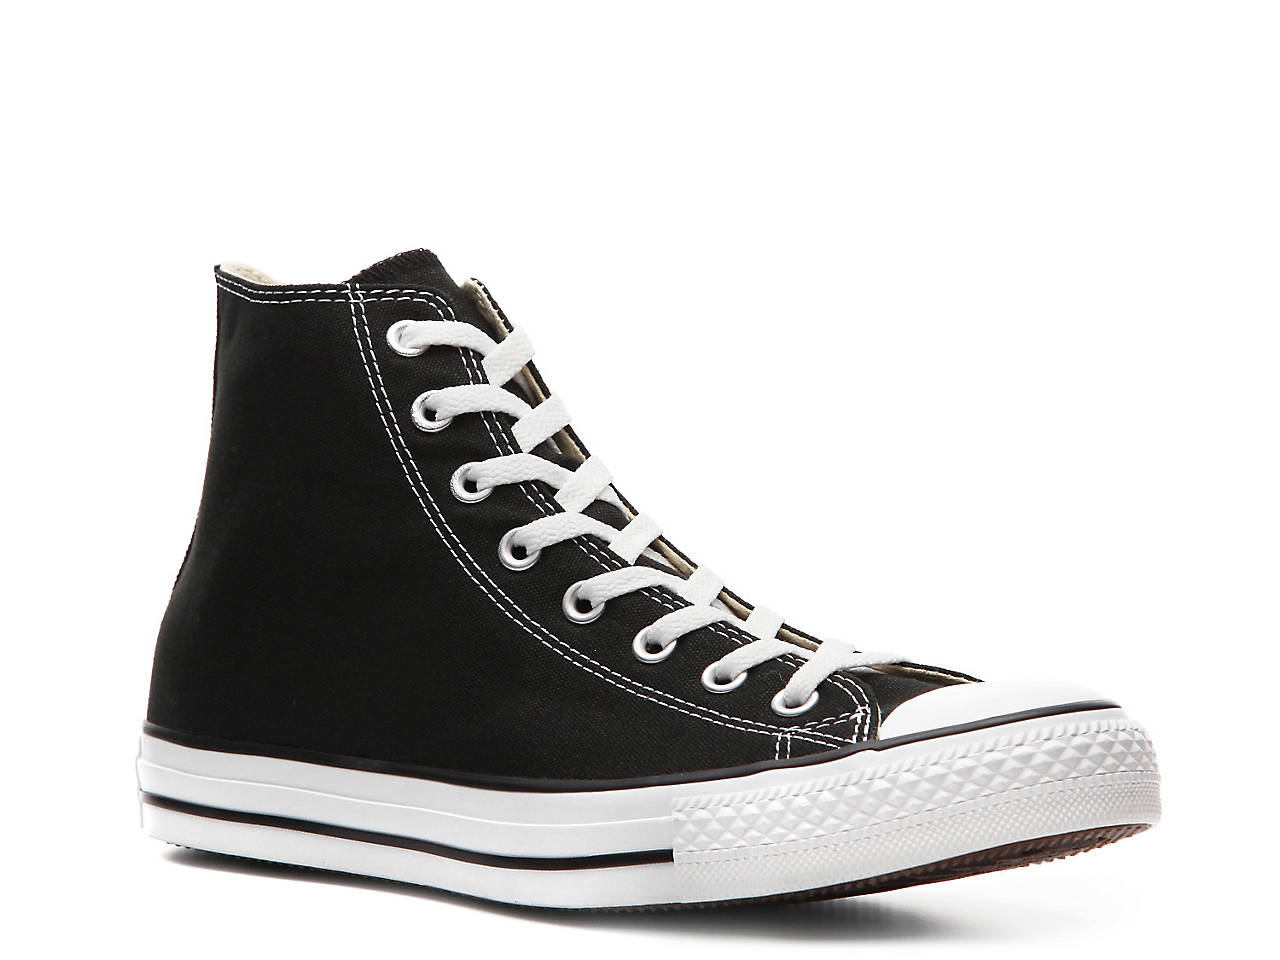 f48b28394b7b Converse Chuck Taylor All Star High-Top Sneaker - Men s Men s Shoes ...